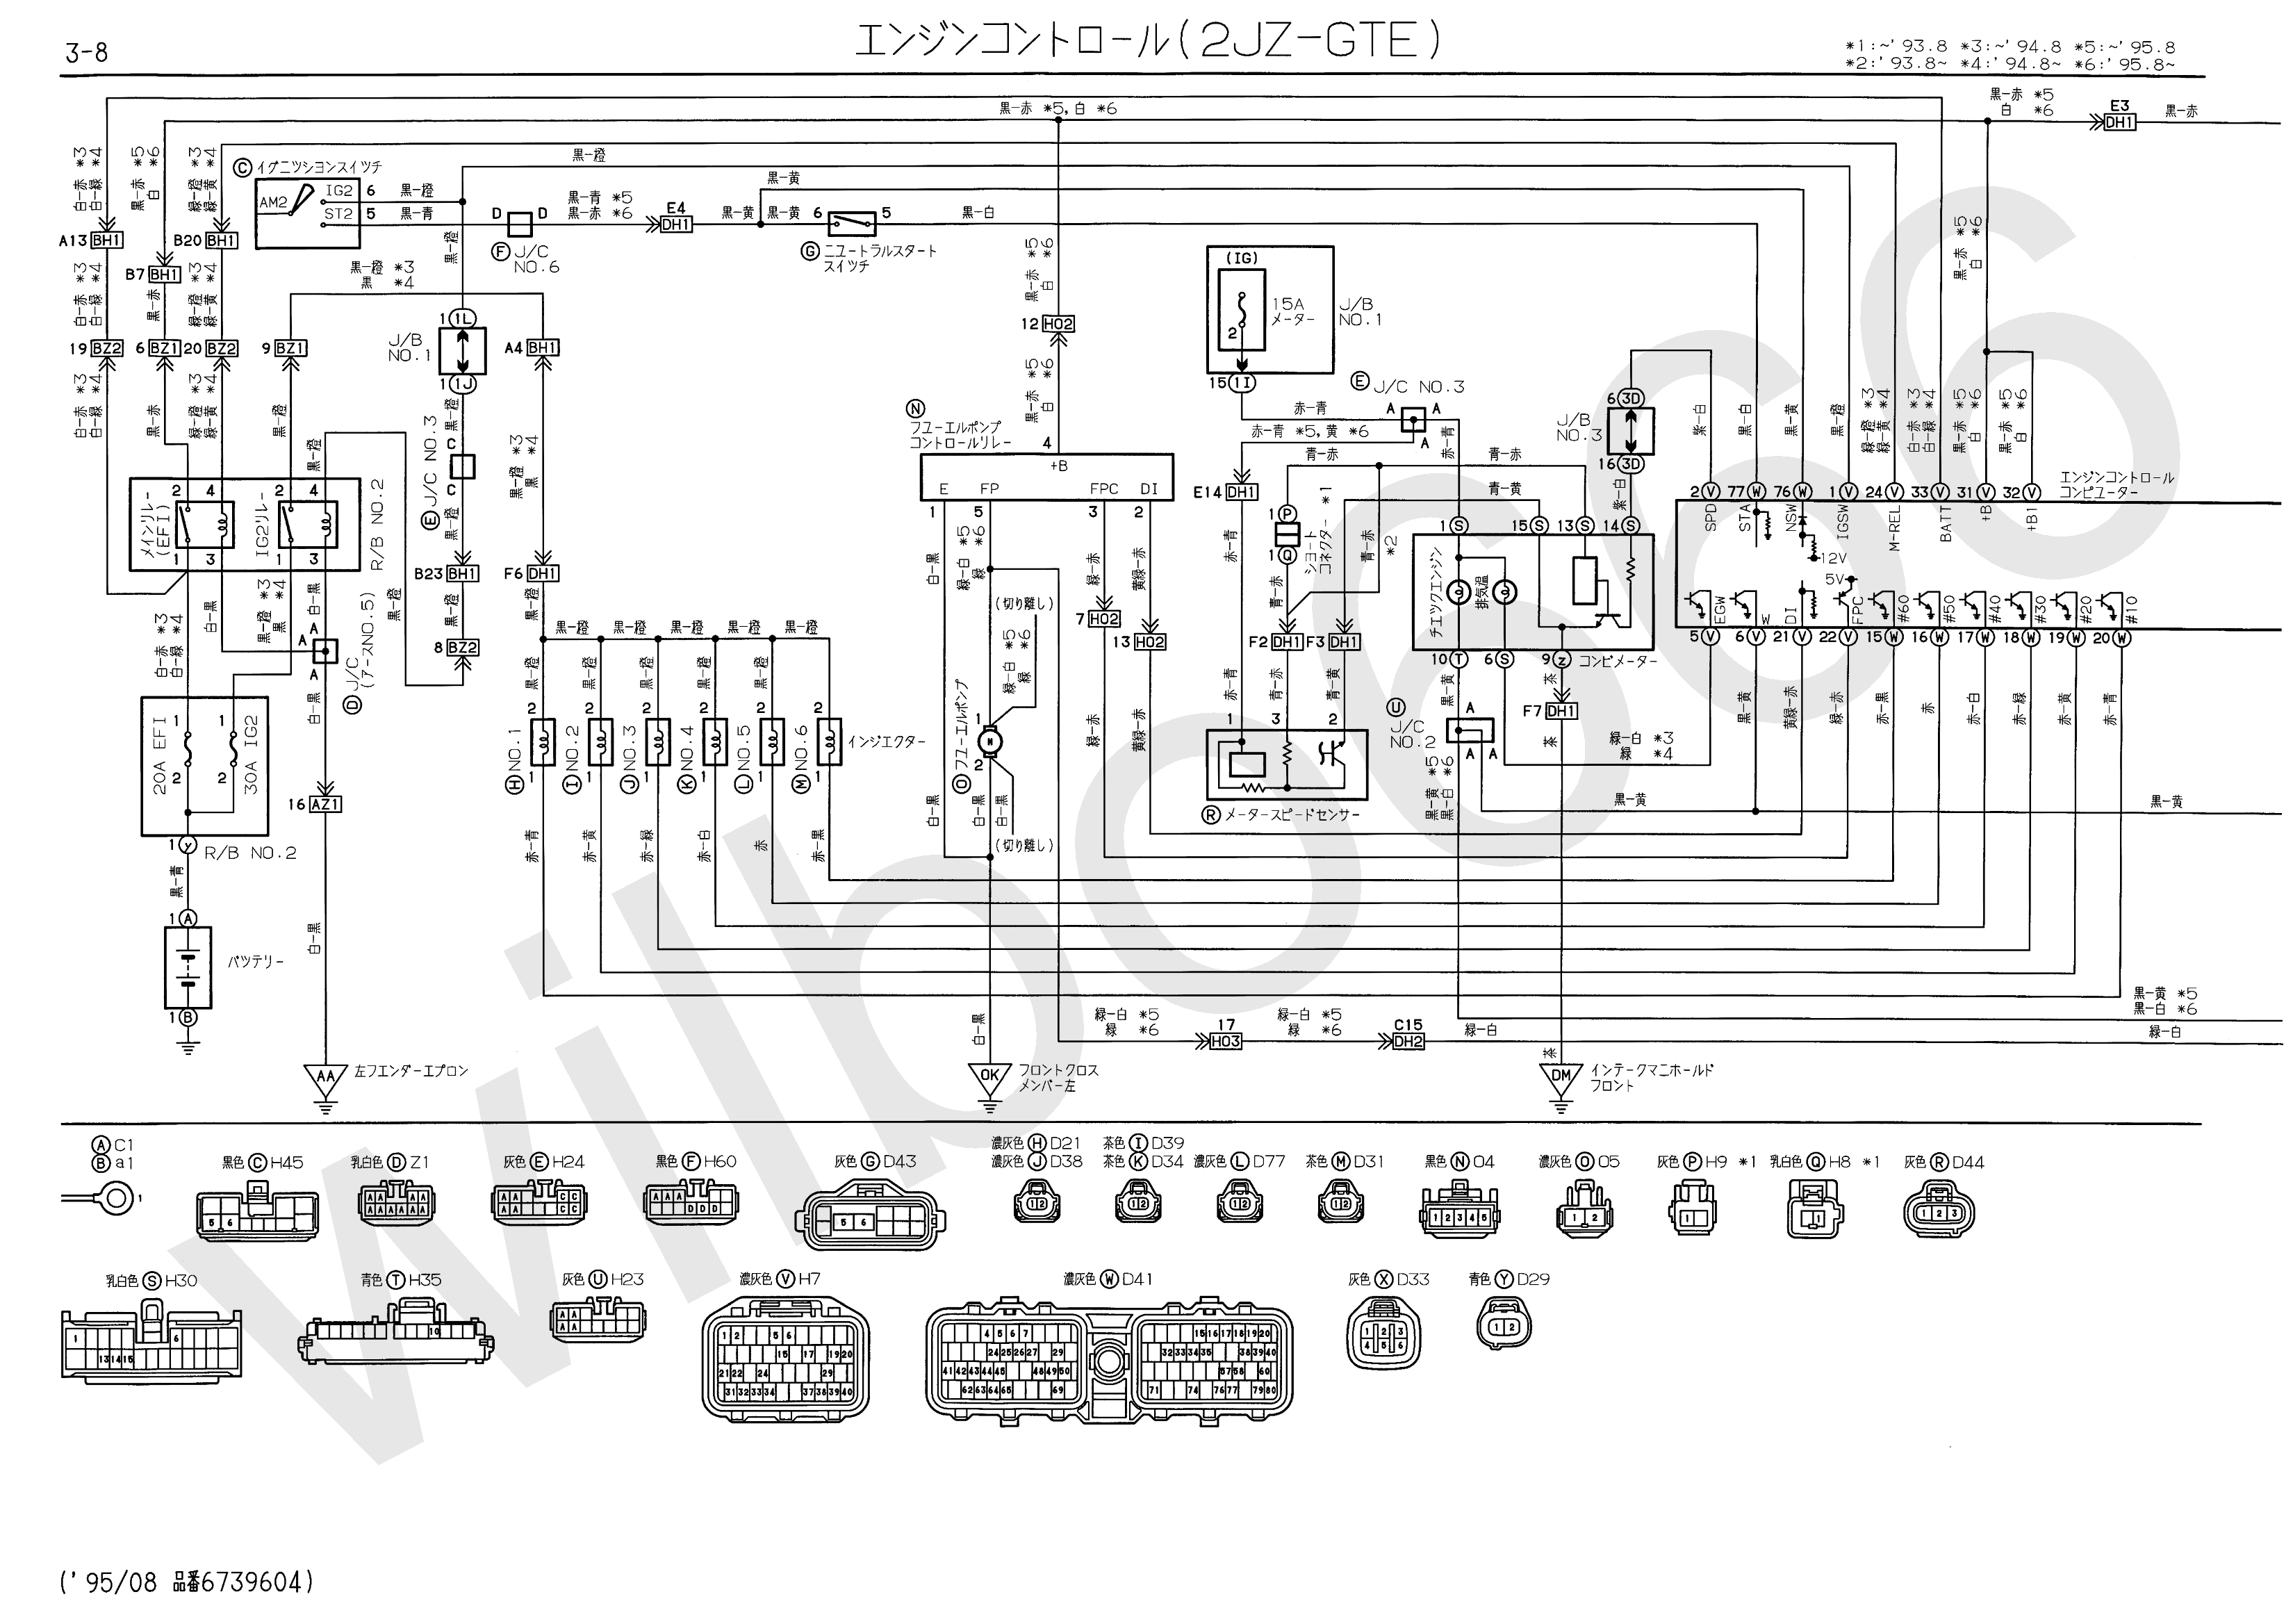 toyota engine parts diagram light circuit wiring 2jz 16 stromoeko de gte ub9 lektionenderliebe u2022 rh